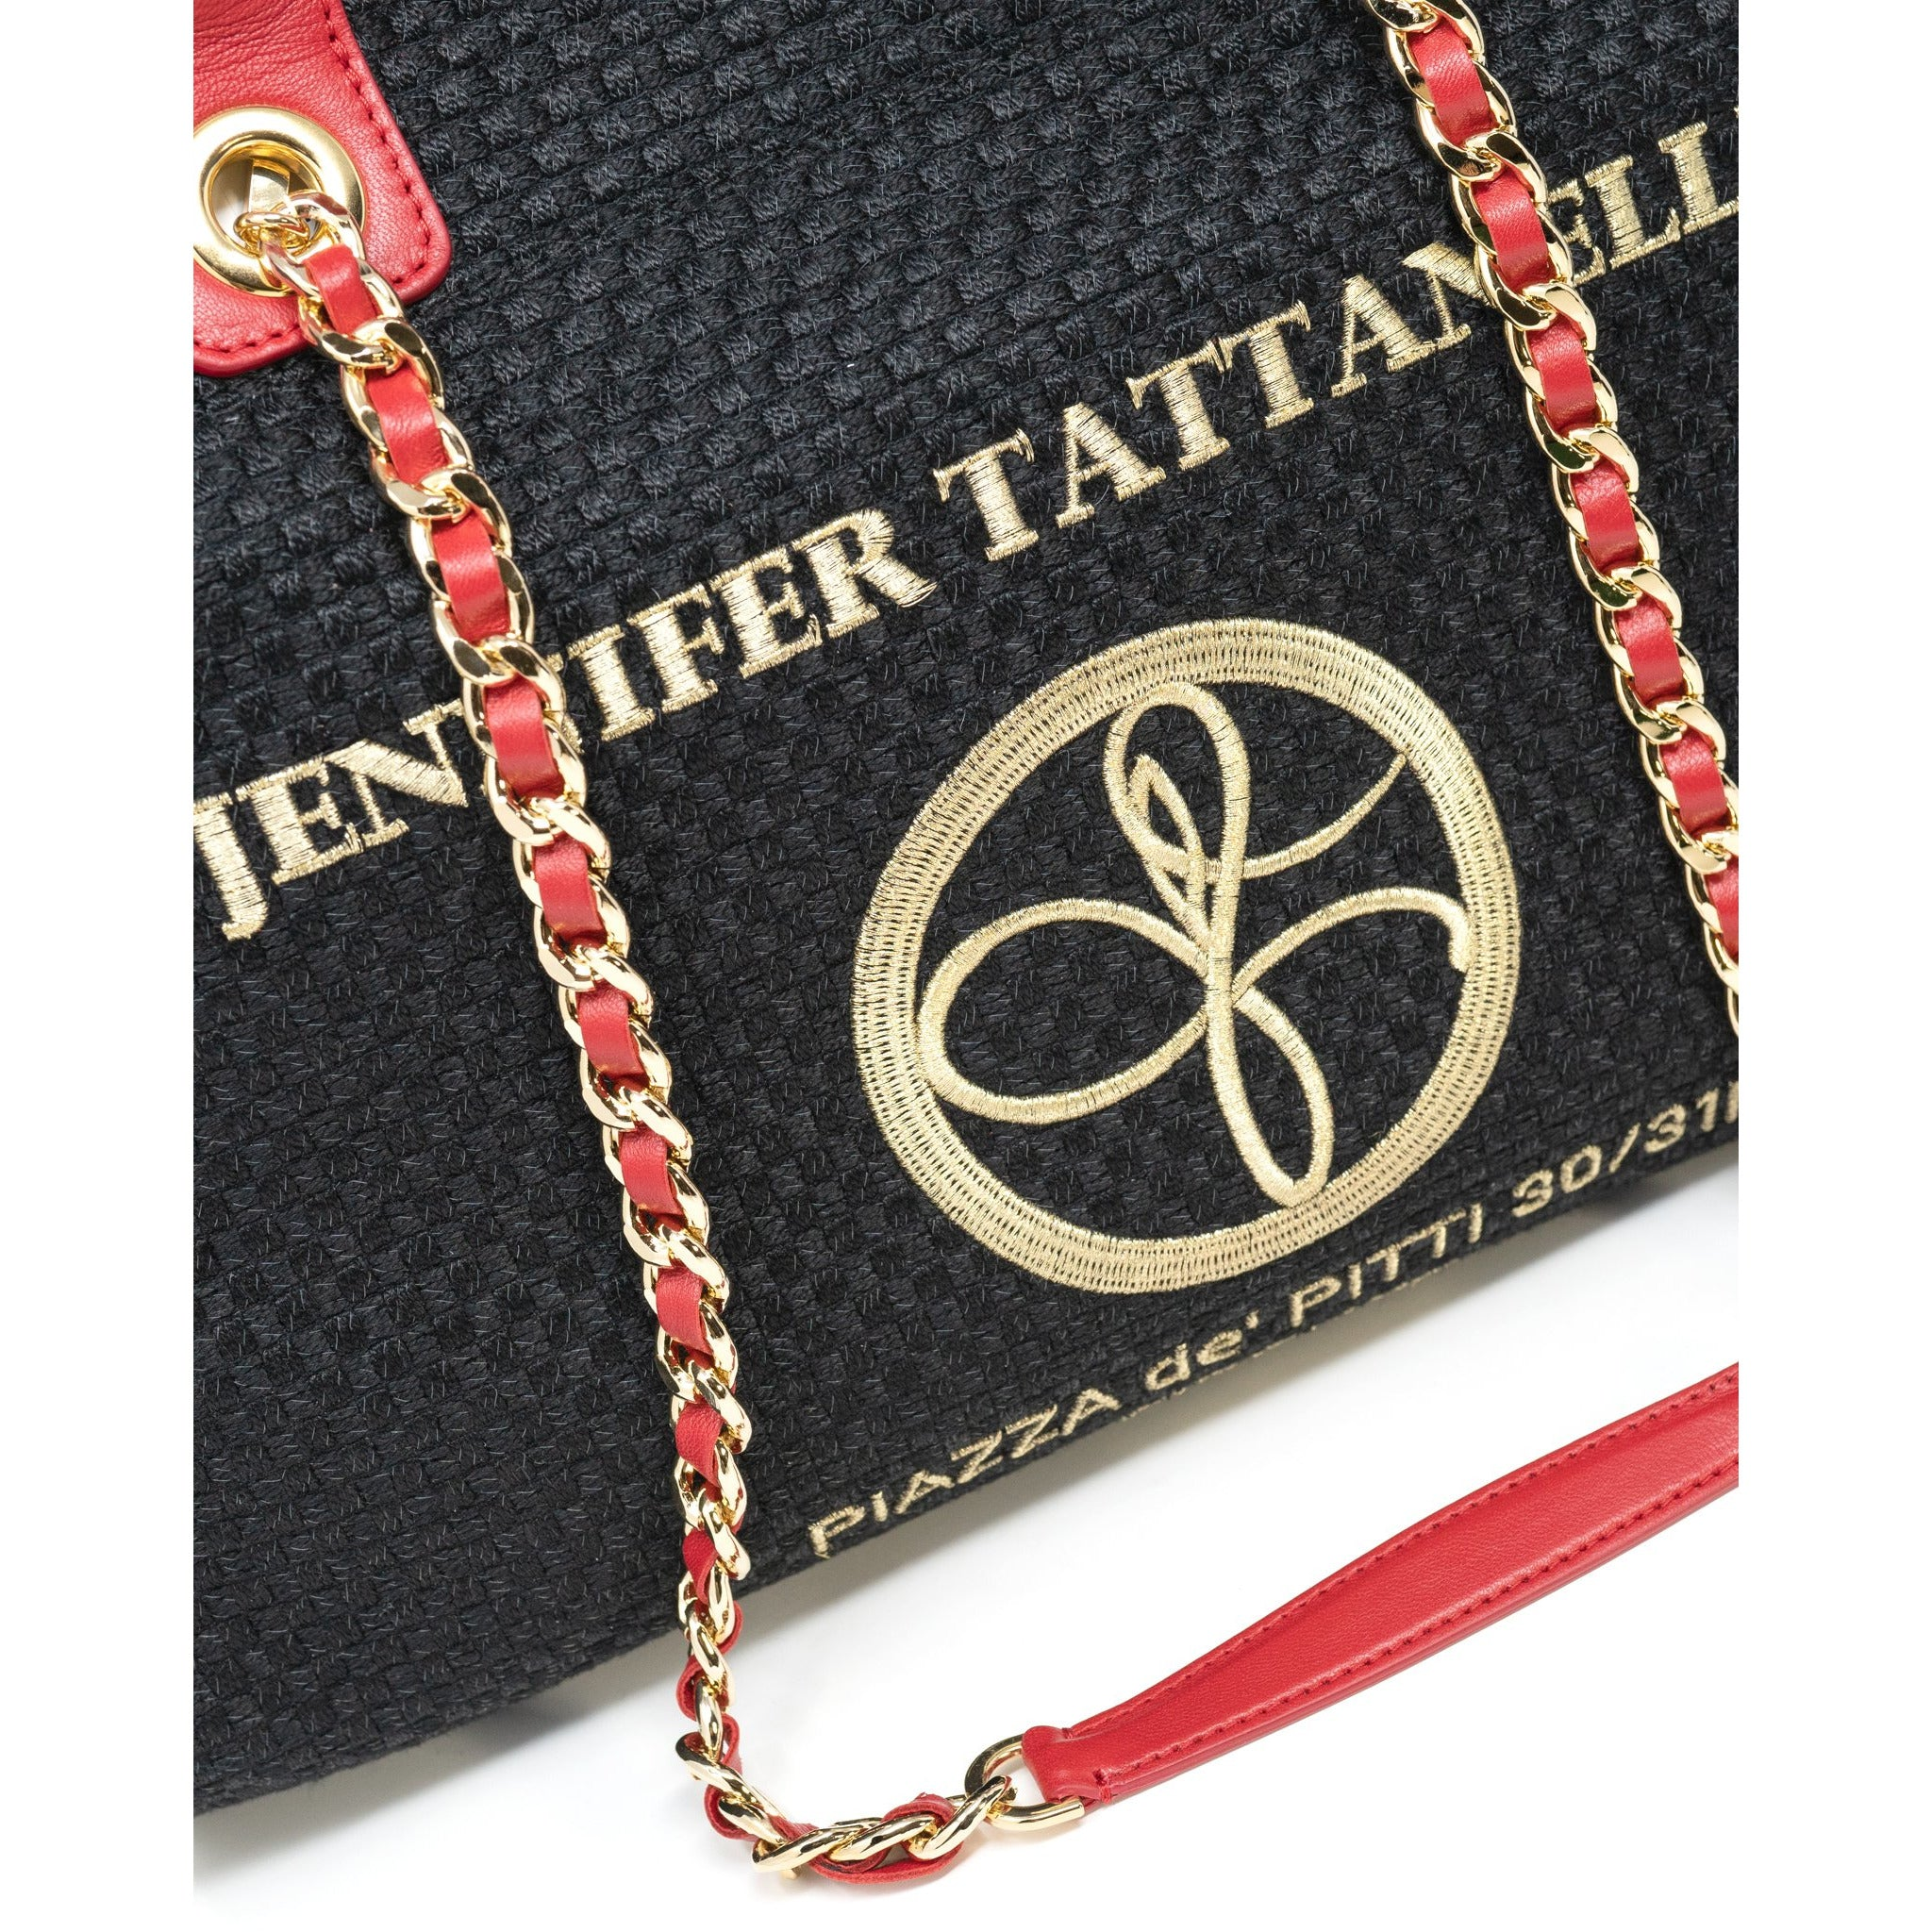 The Hamptons Large Shopping Bag in Red - Jennifer Tattanelli